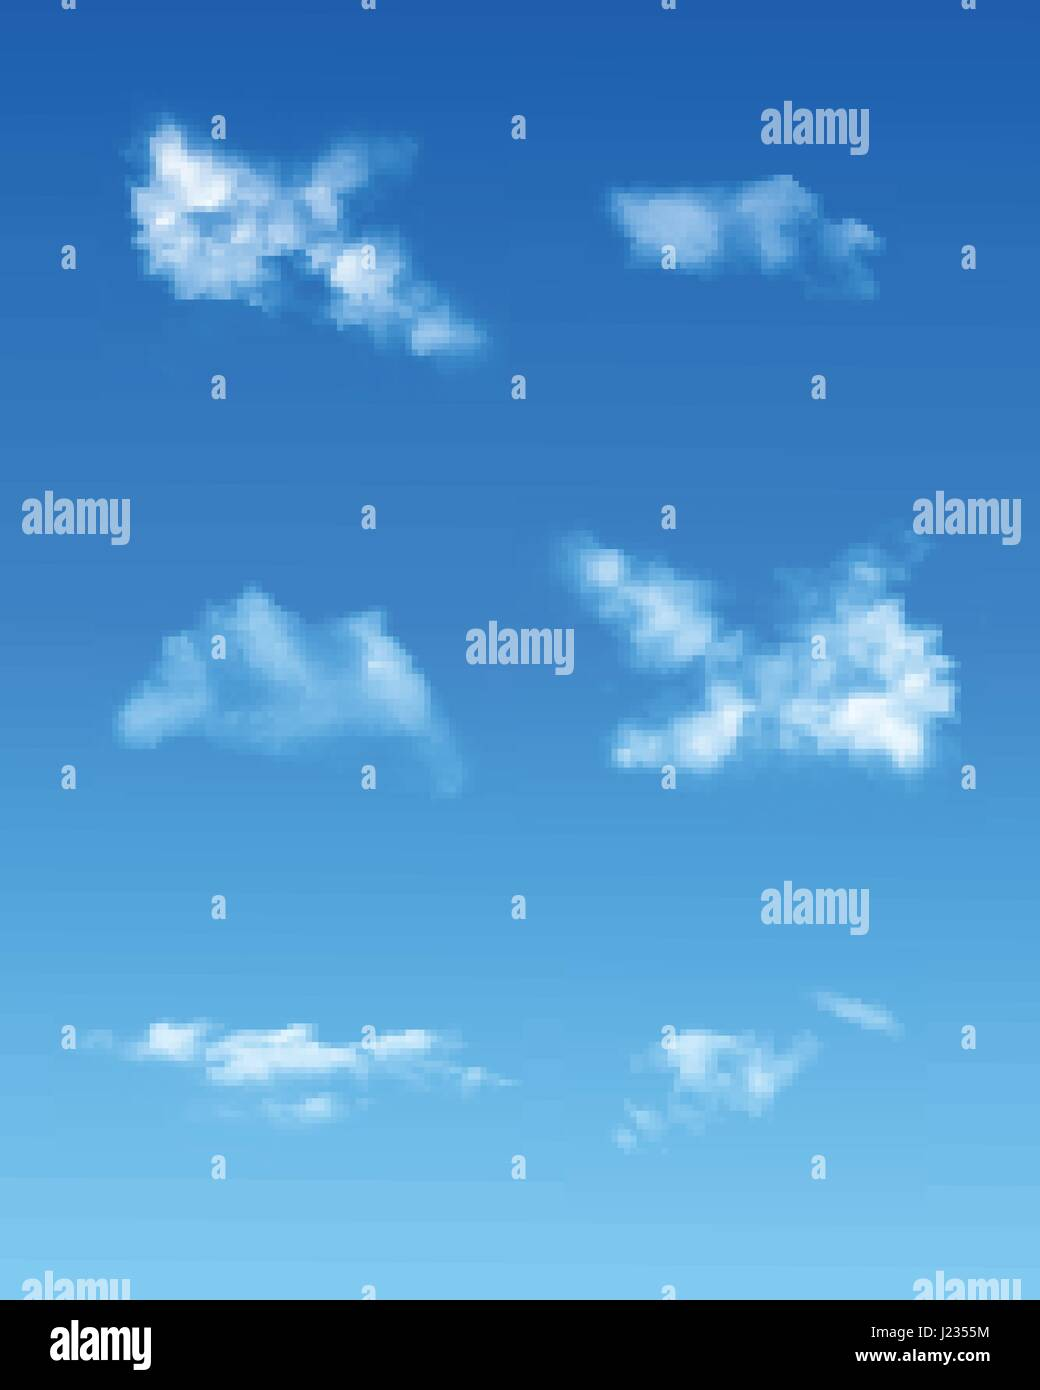 Set Of Realistic Transparent Clouds on blue backgrounds